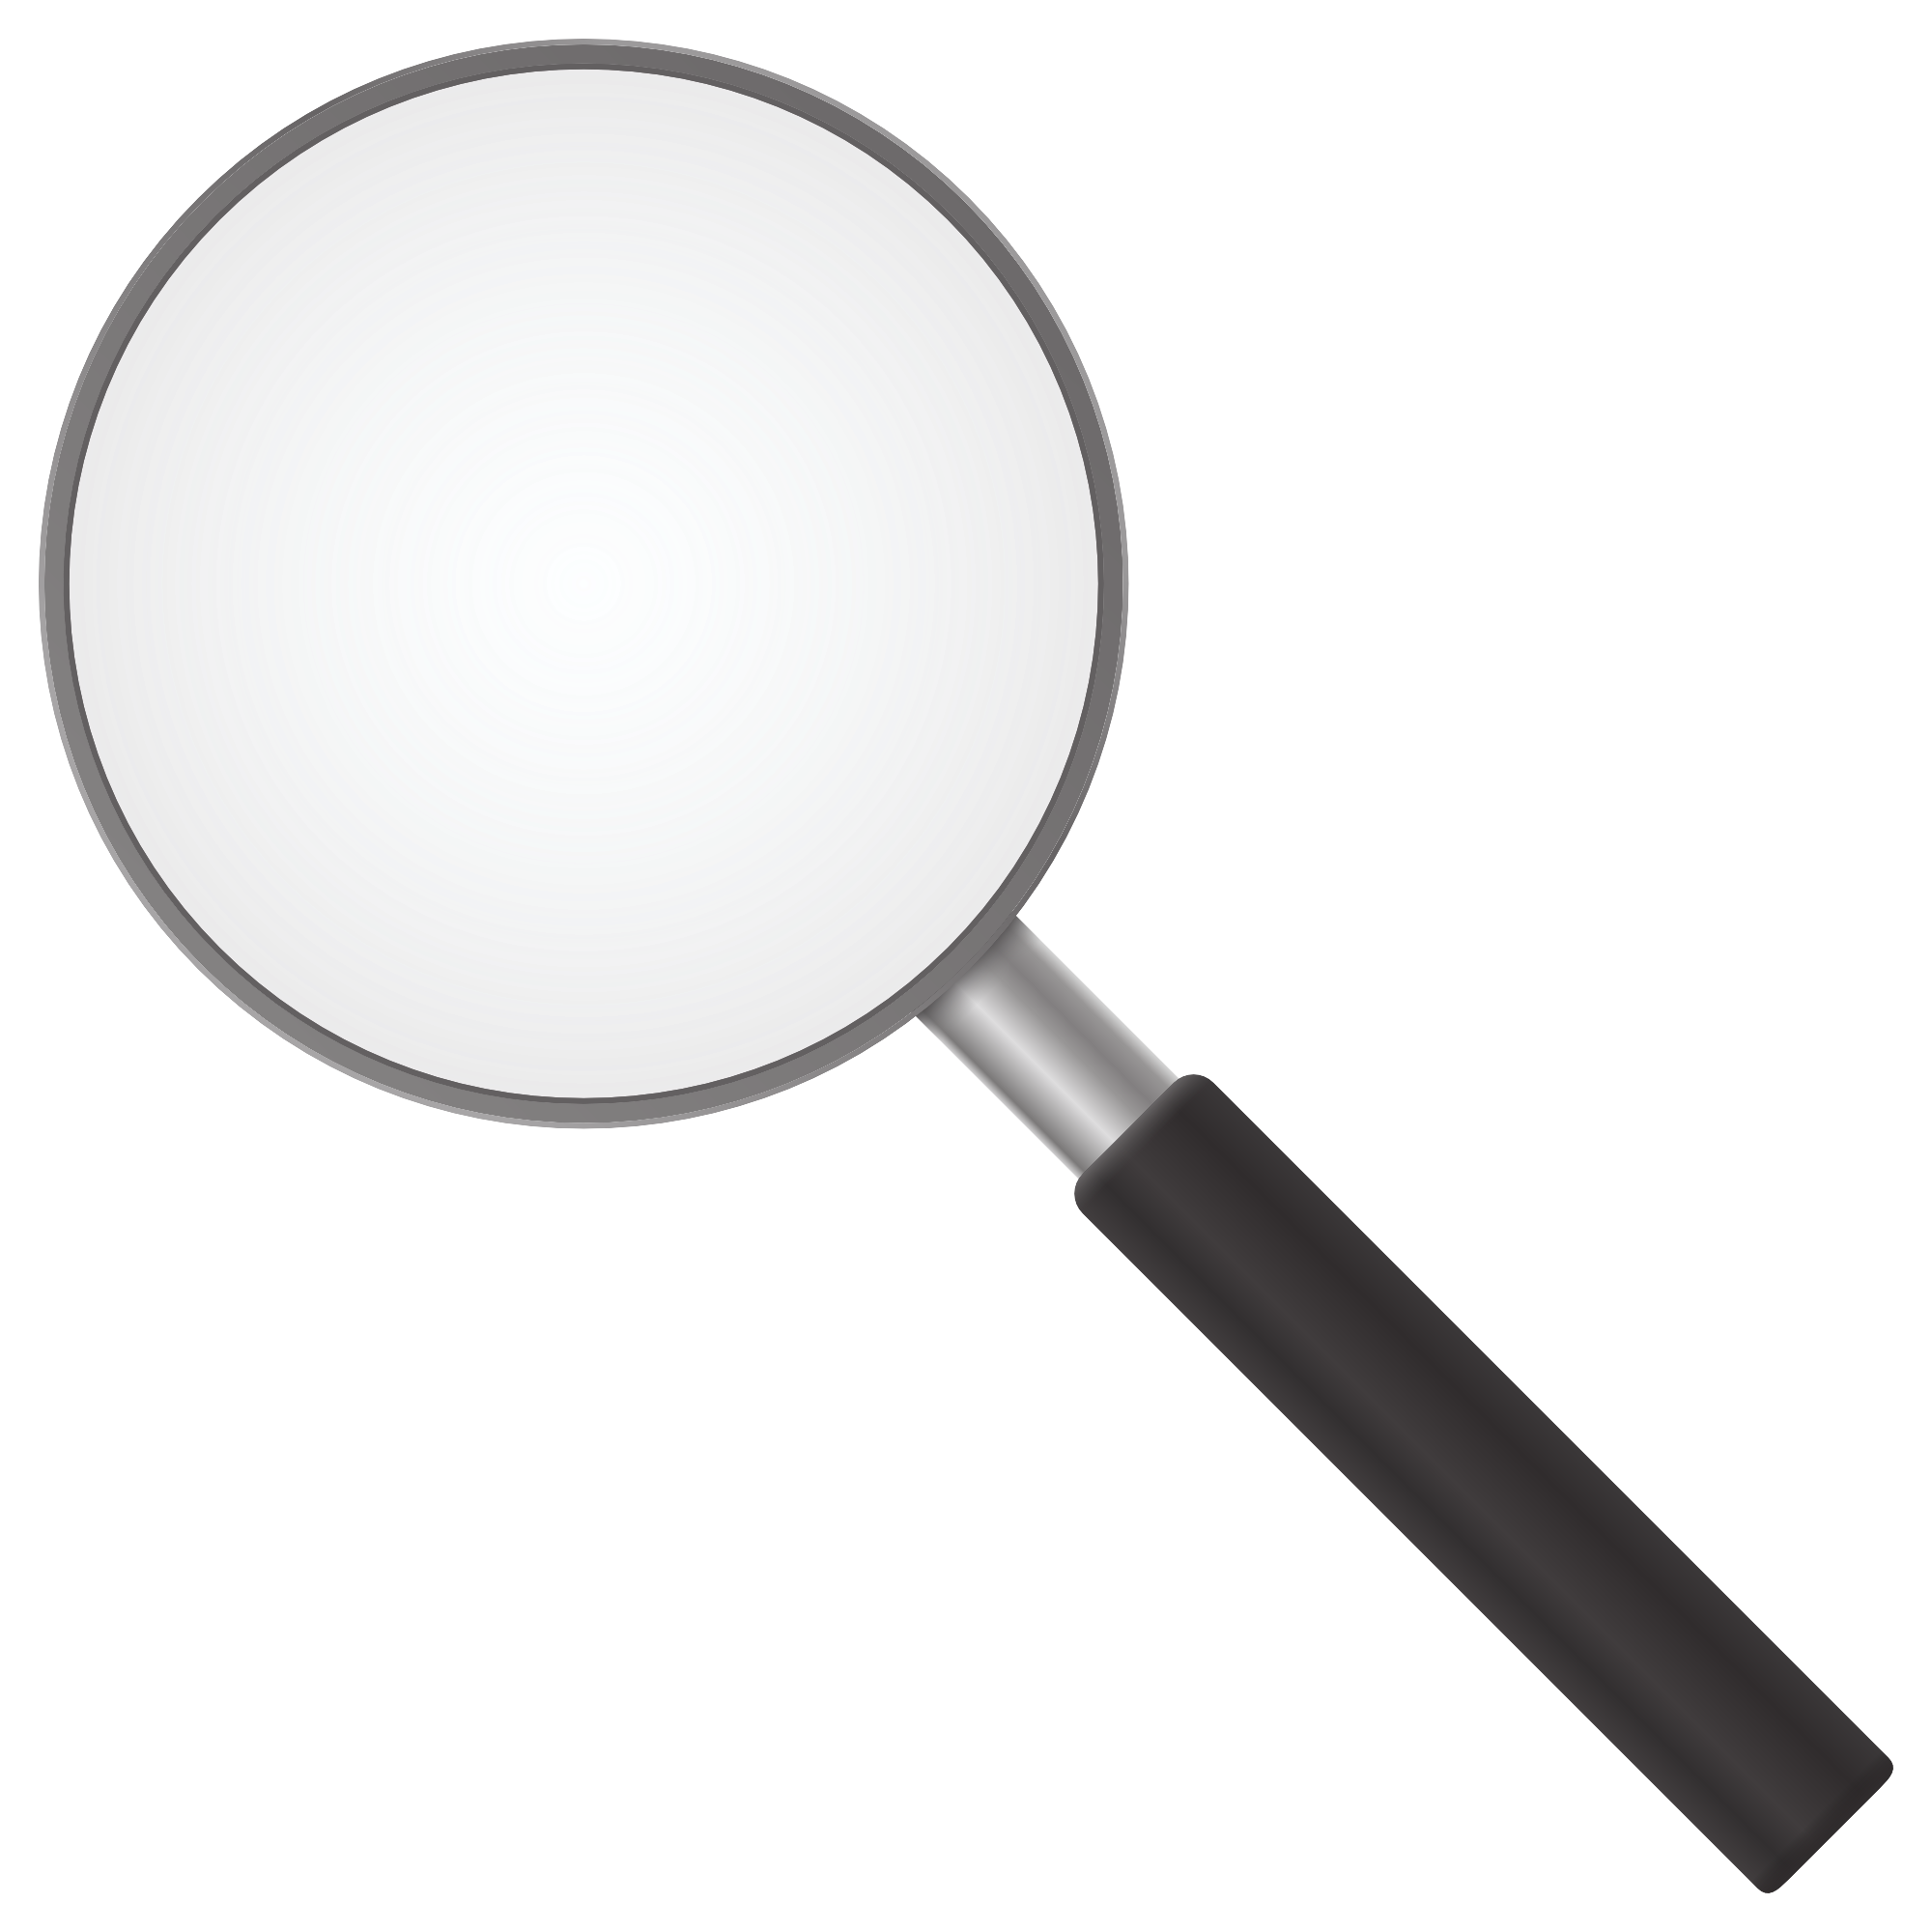 Loupe PNG - 824